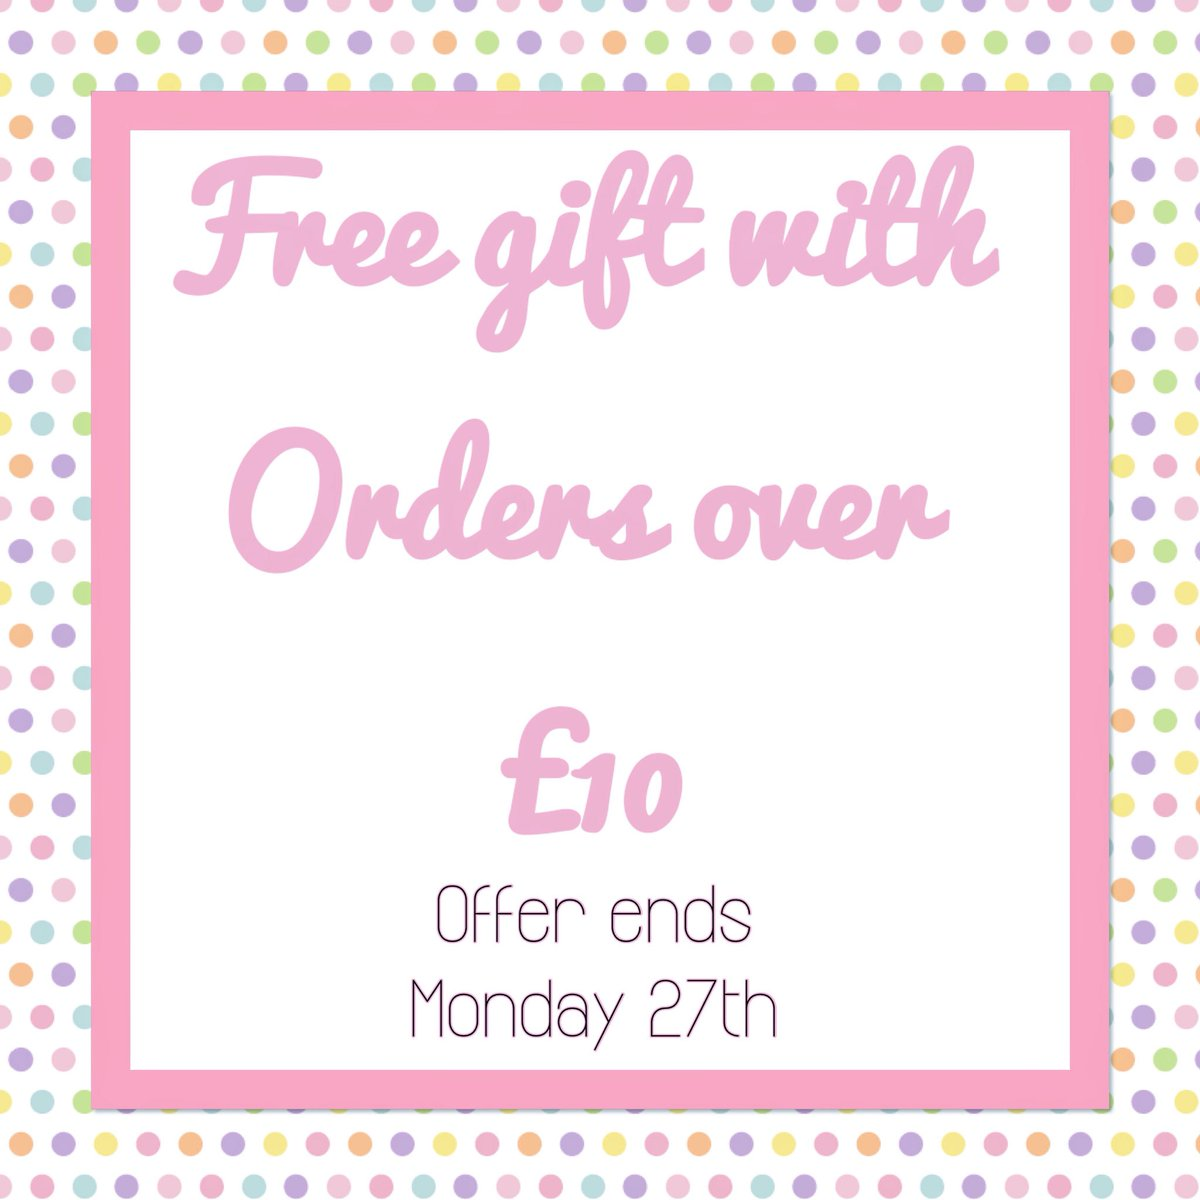 Free gift with every order over £10   https://www. etsy.com/uk/shop/Paperf lowergiftsShop &nbsp; …  #shopsmall #Etsy #gifts #Womaninbiz #wnukr #etsyfinds #giftsforher<br>http://pic.twitter.com/CXG9rTFihm